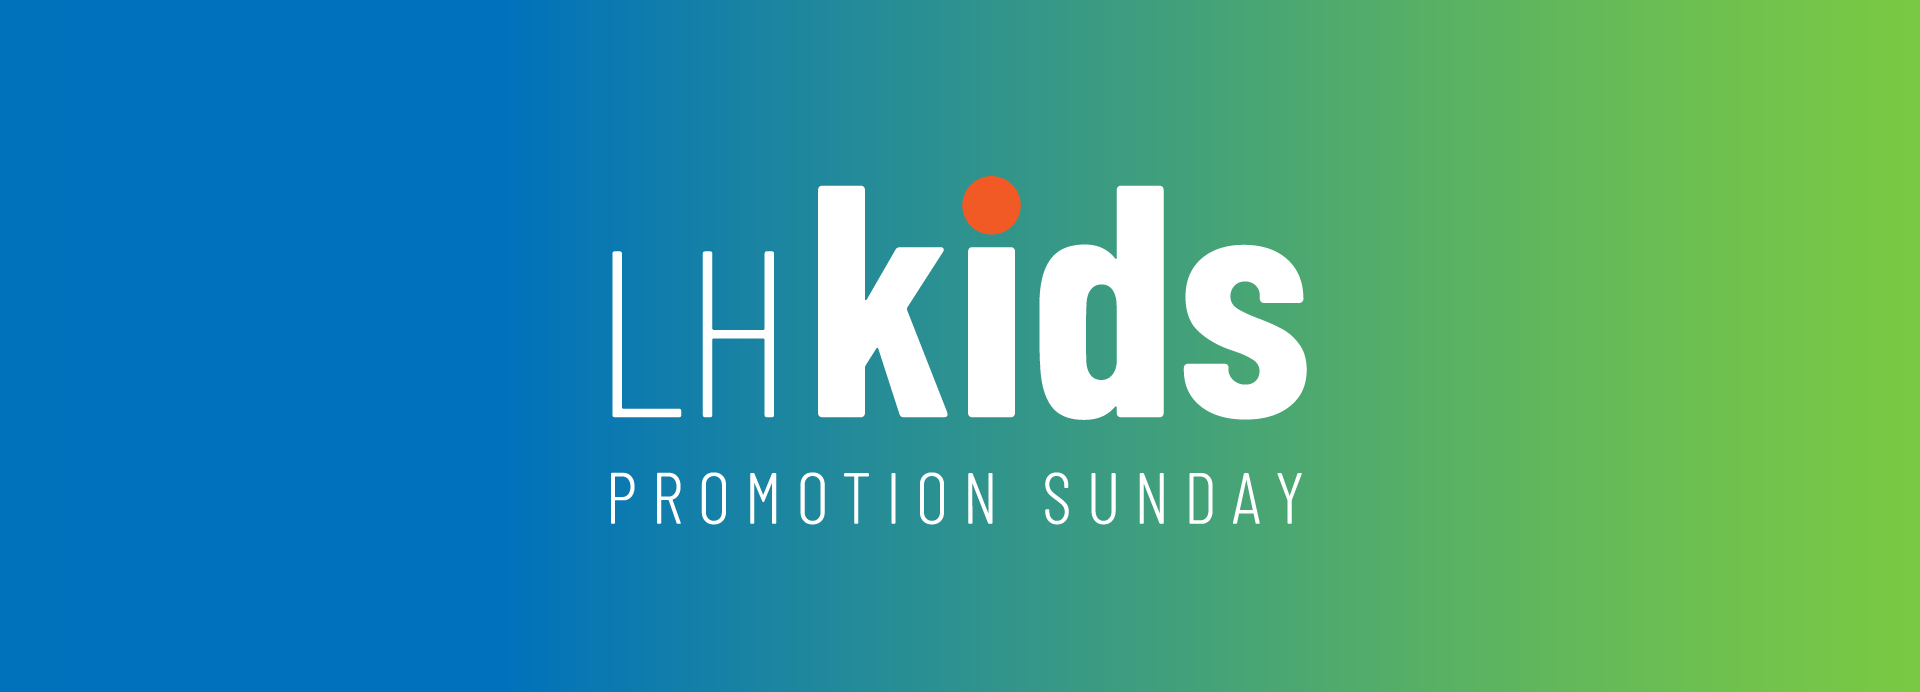 Promotion_1920X692.png